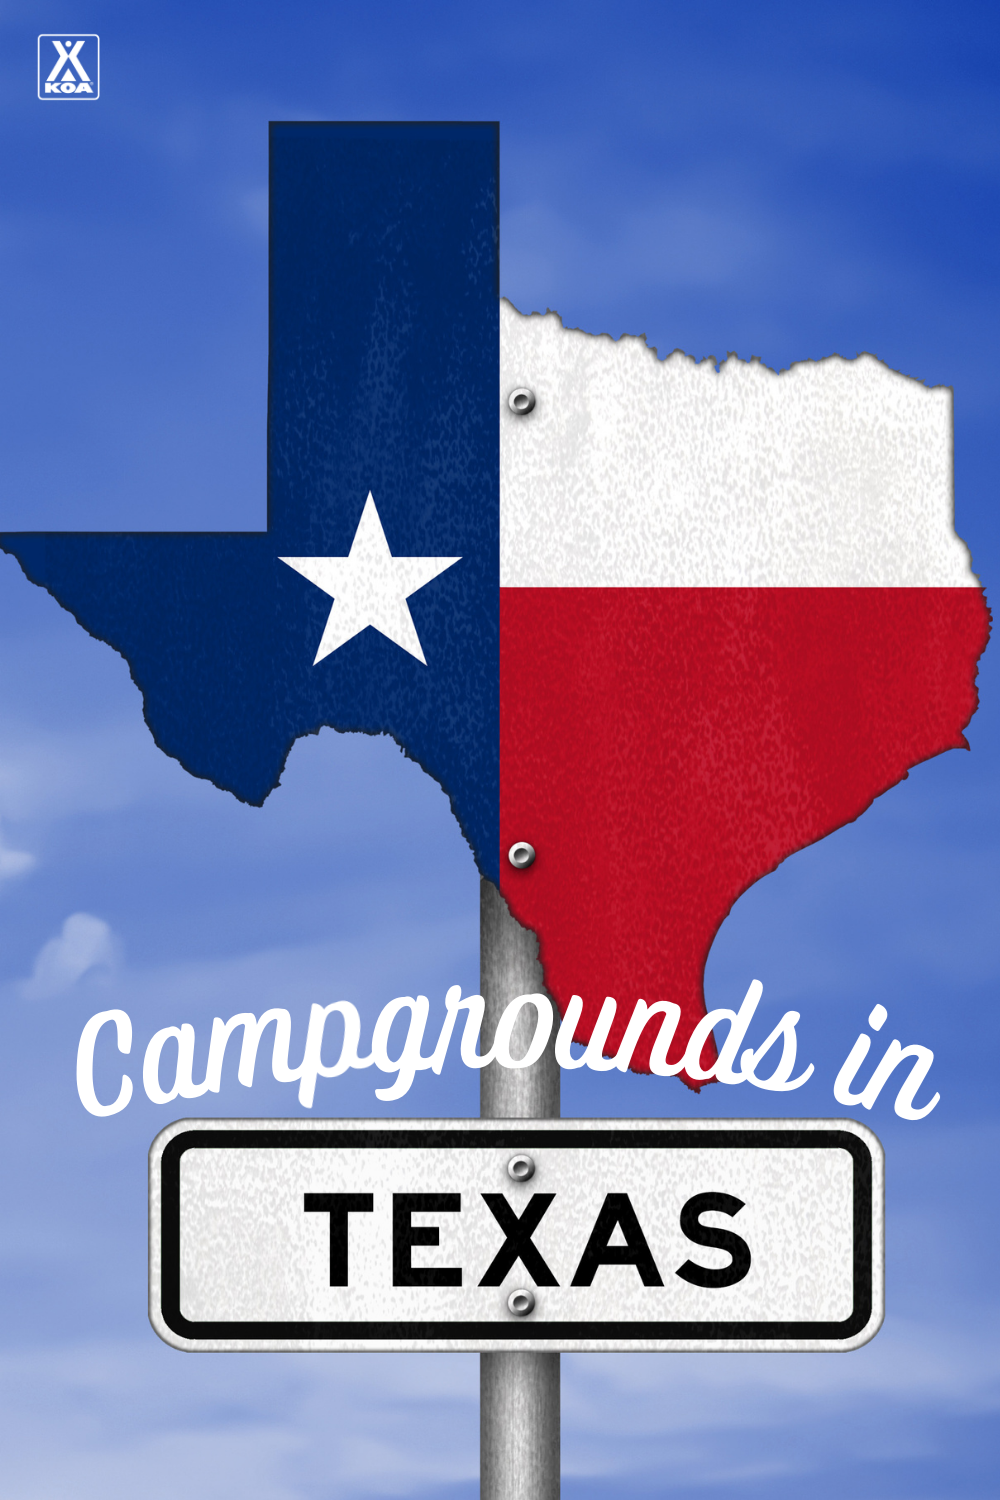 Looking to plan a camping trip to Texas? Our Texas camping guide has all the information you need on when to go, where to stay, camping tips & more!